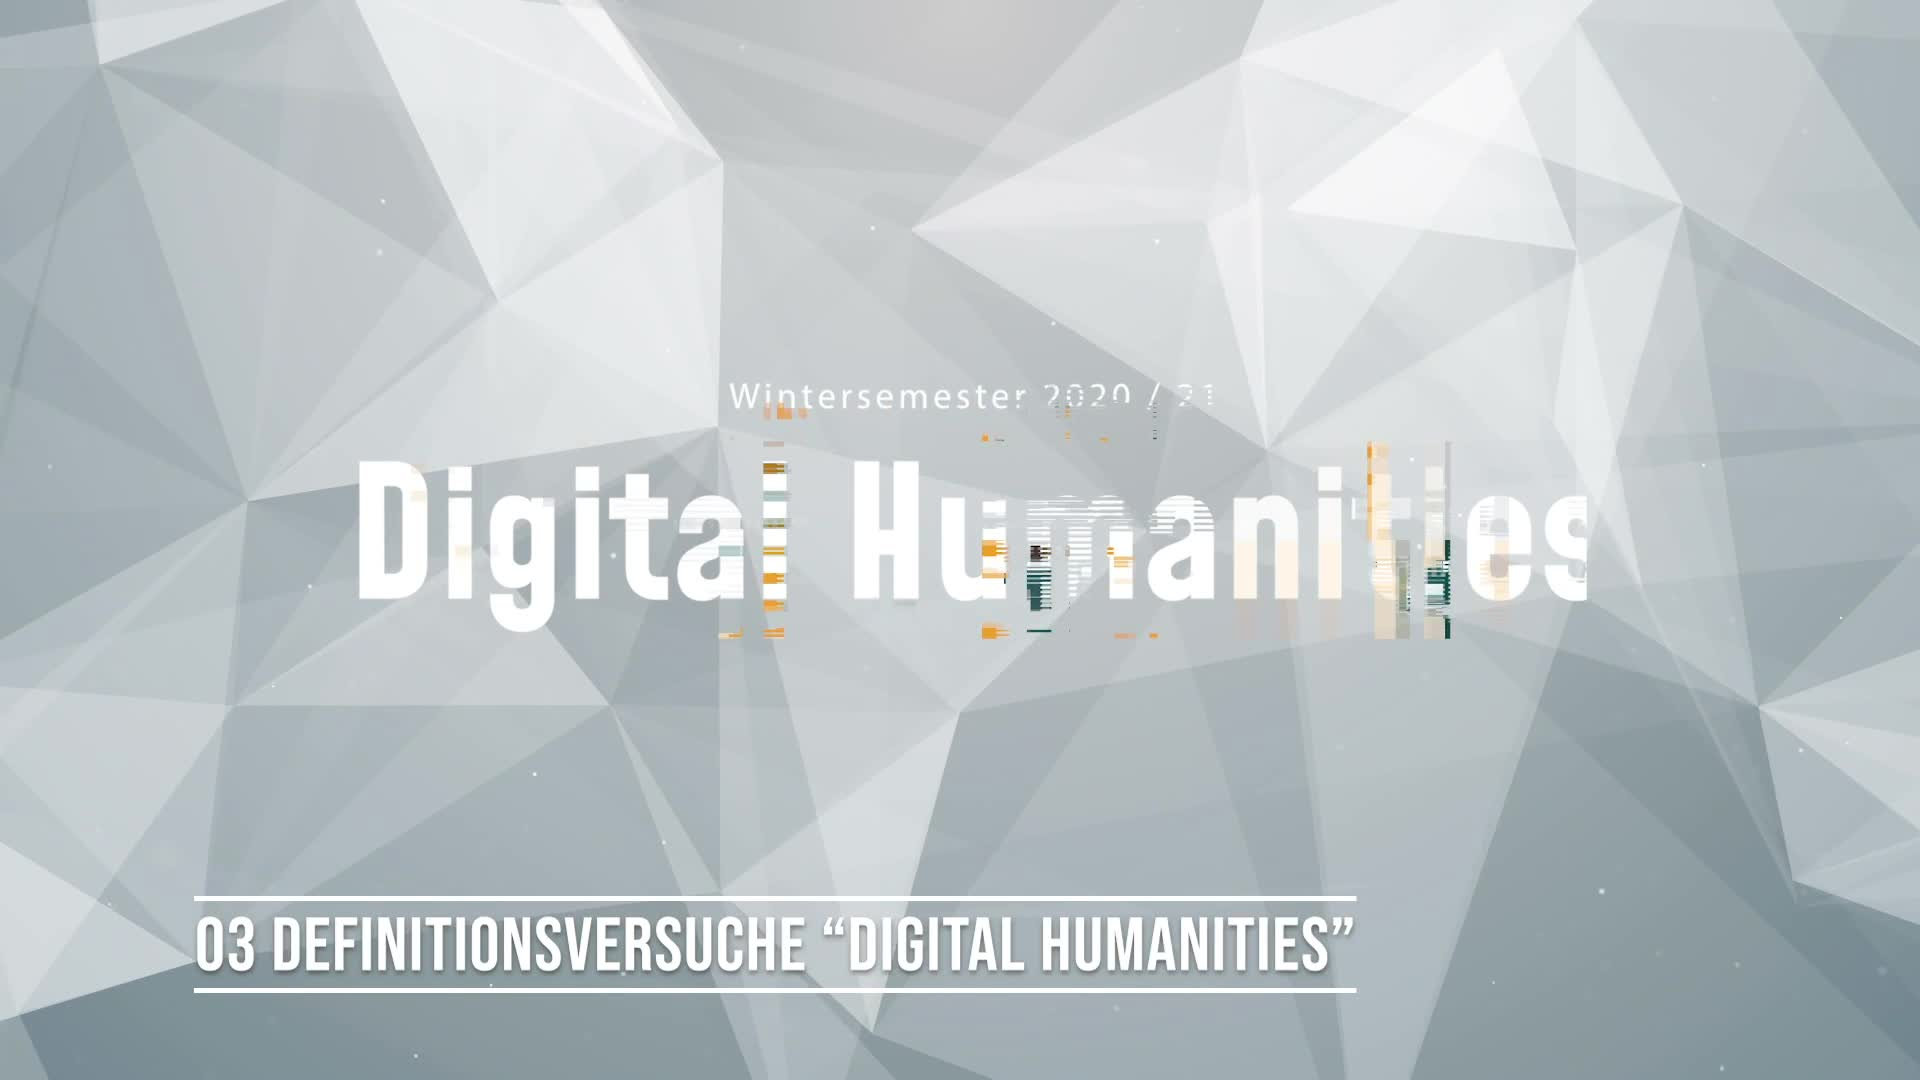 "03 Definitionsversuche ""Digital Humanities"""